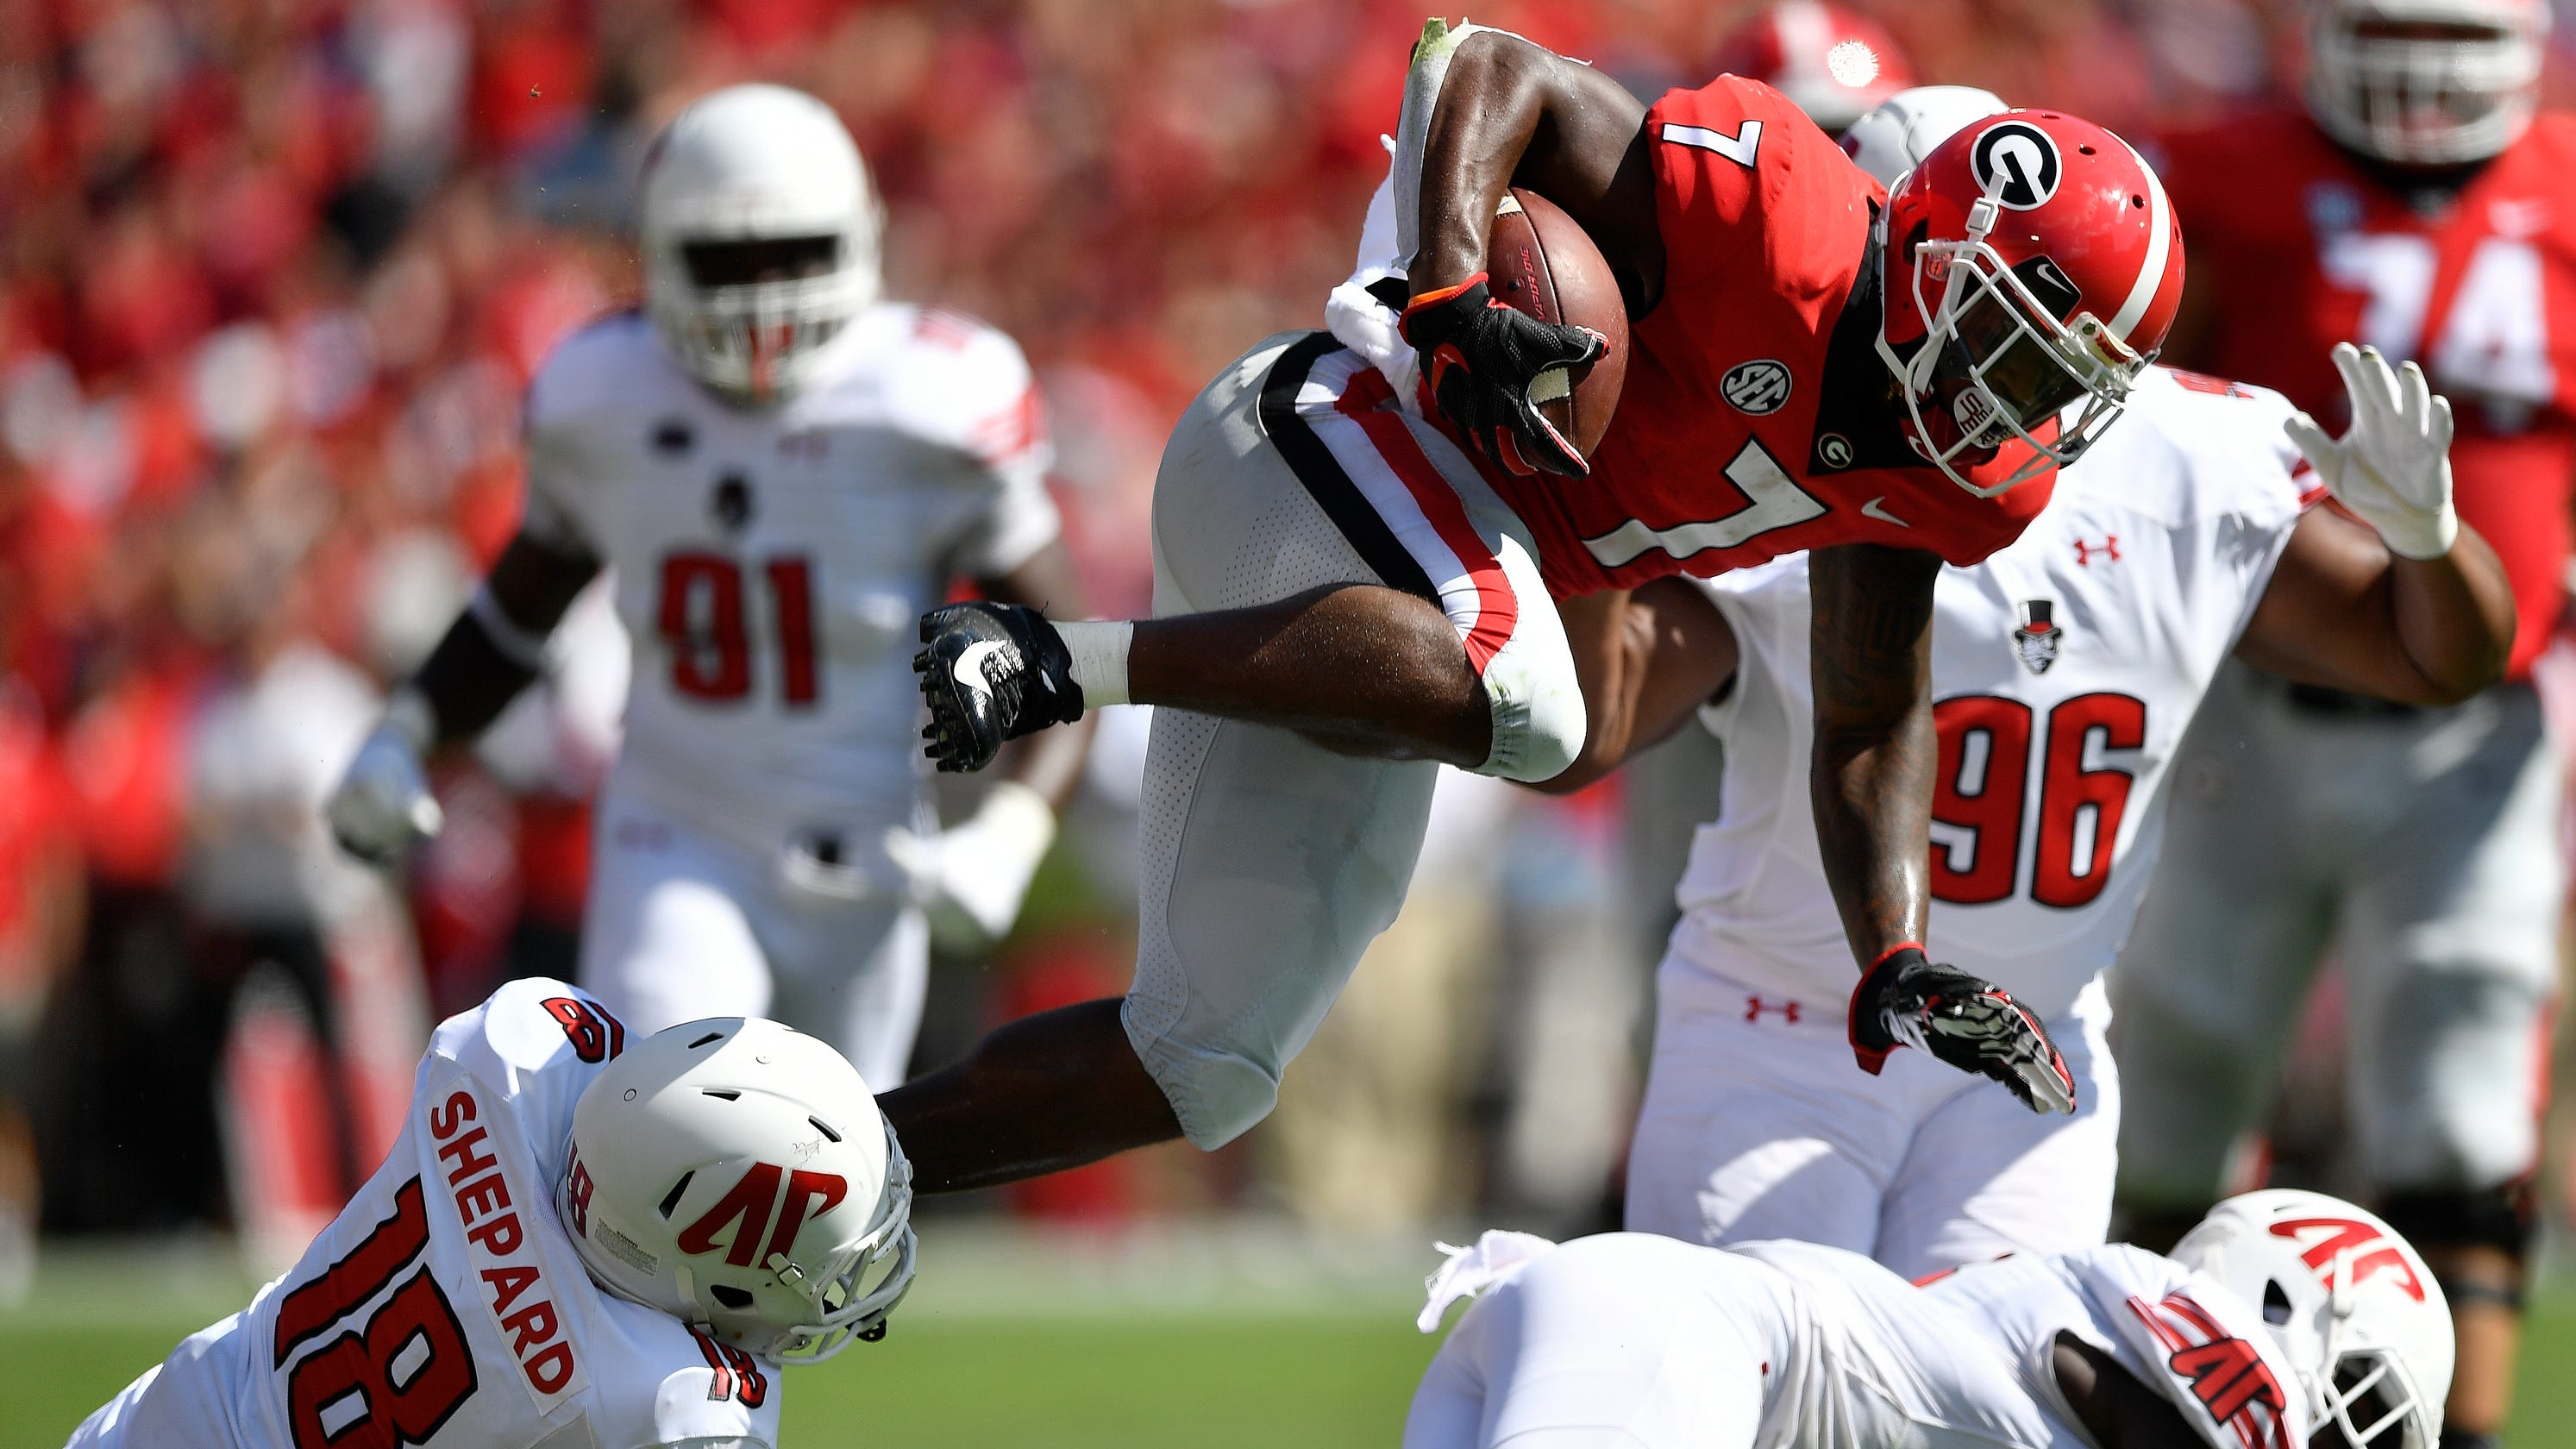 Austin Peay football schedule 2019 includes all FCS opponents